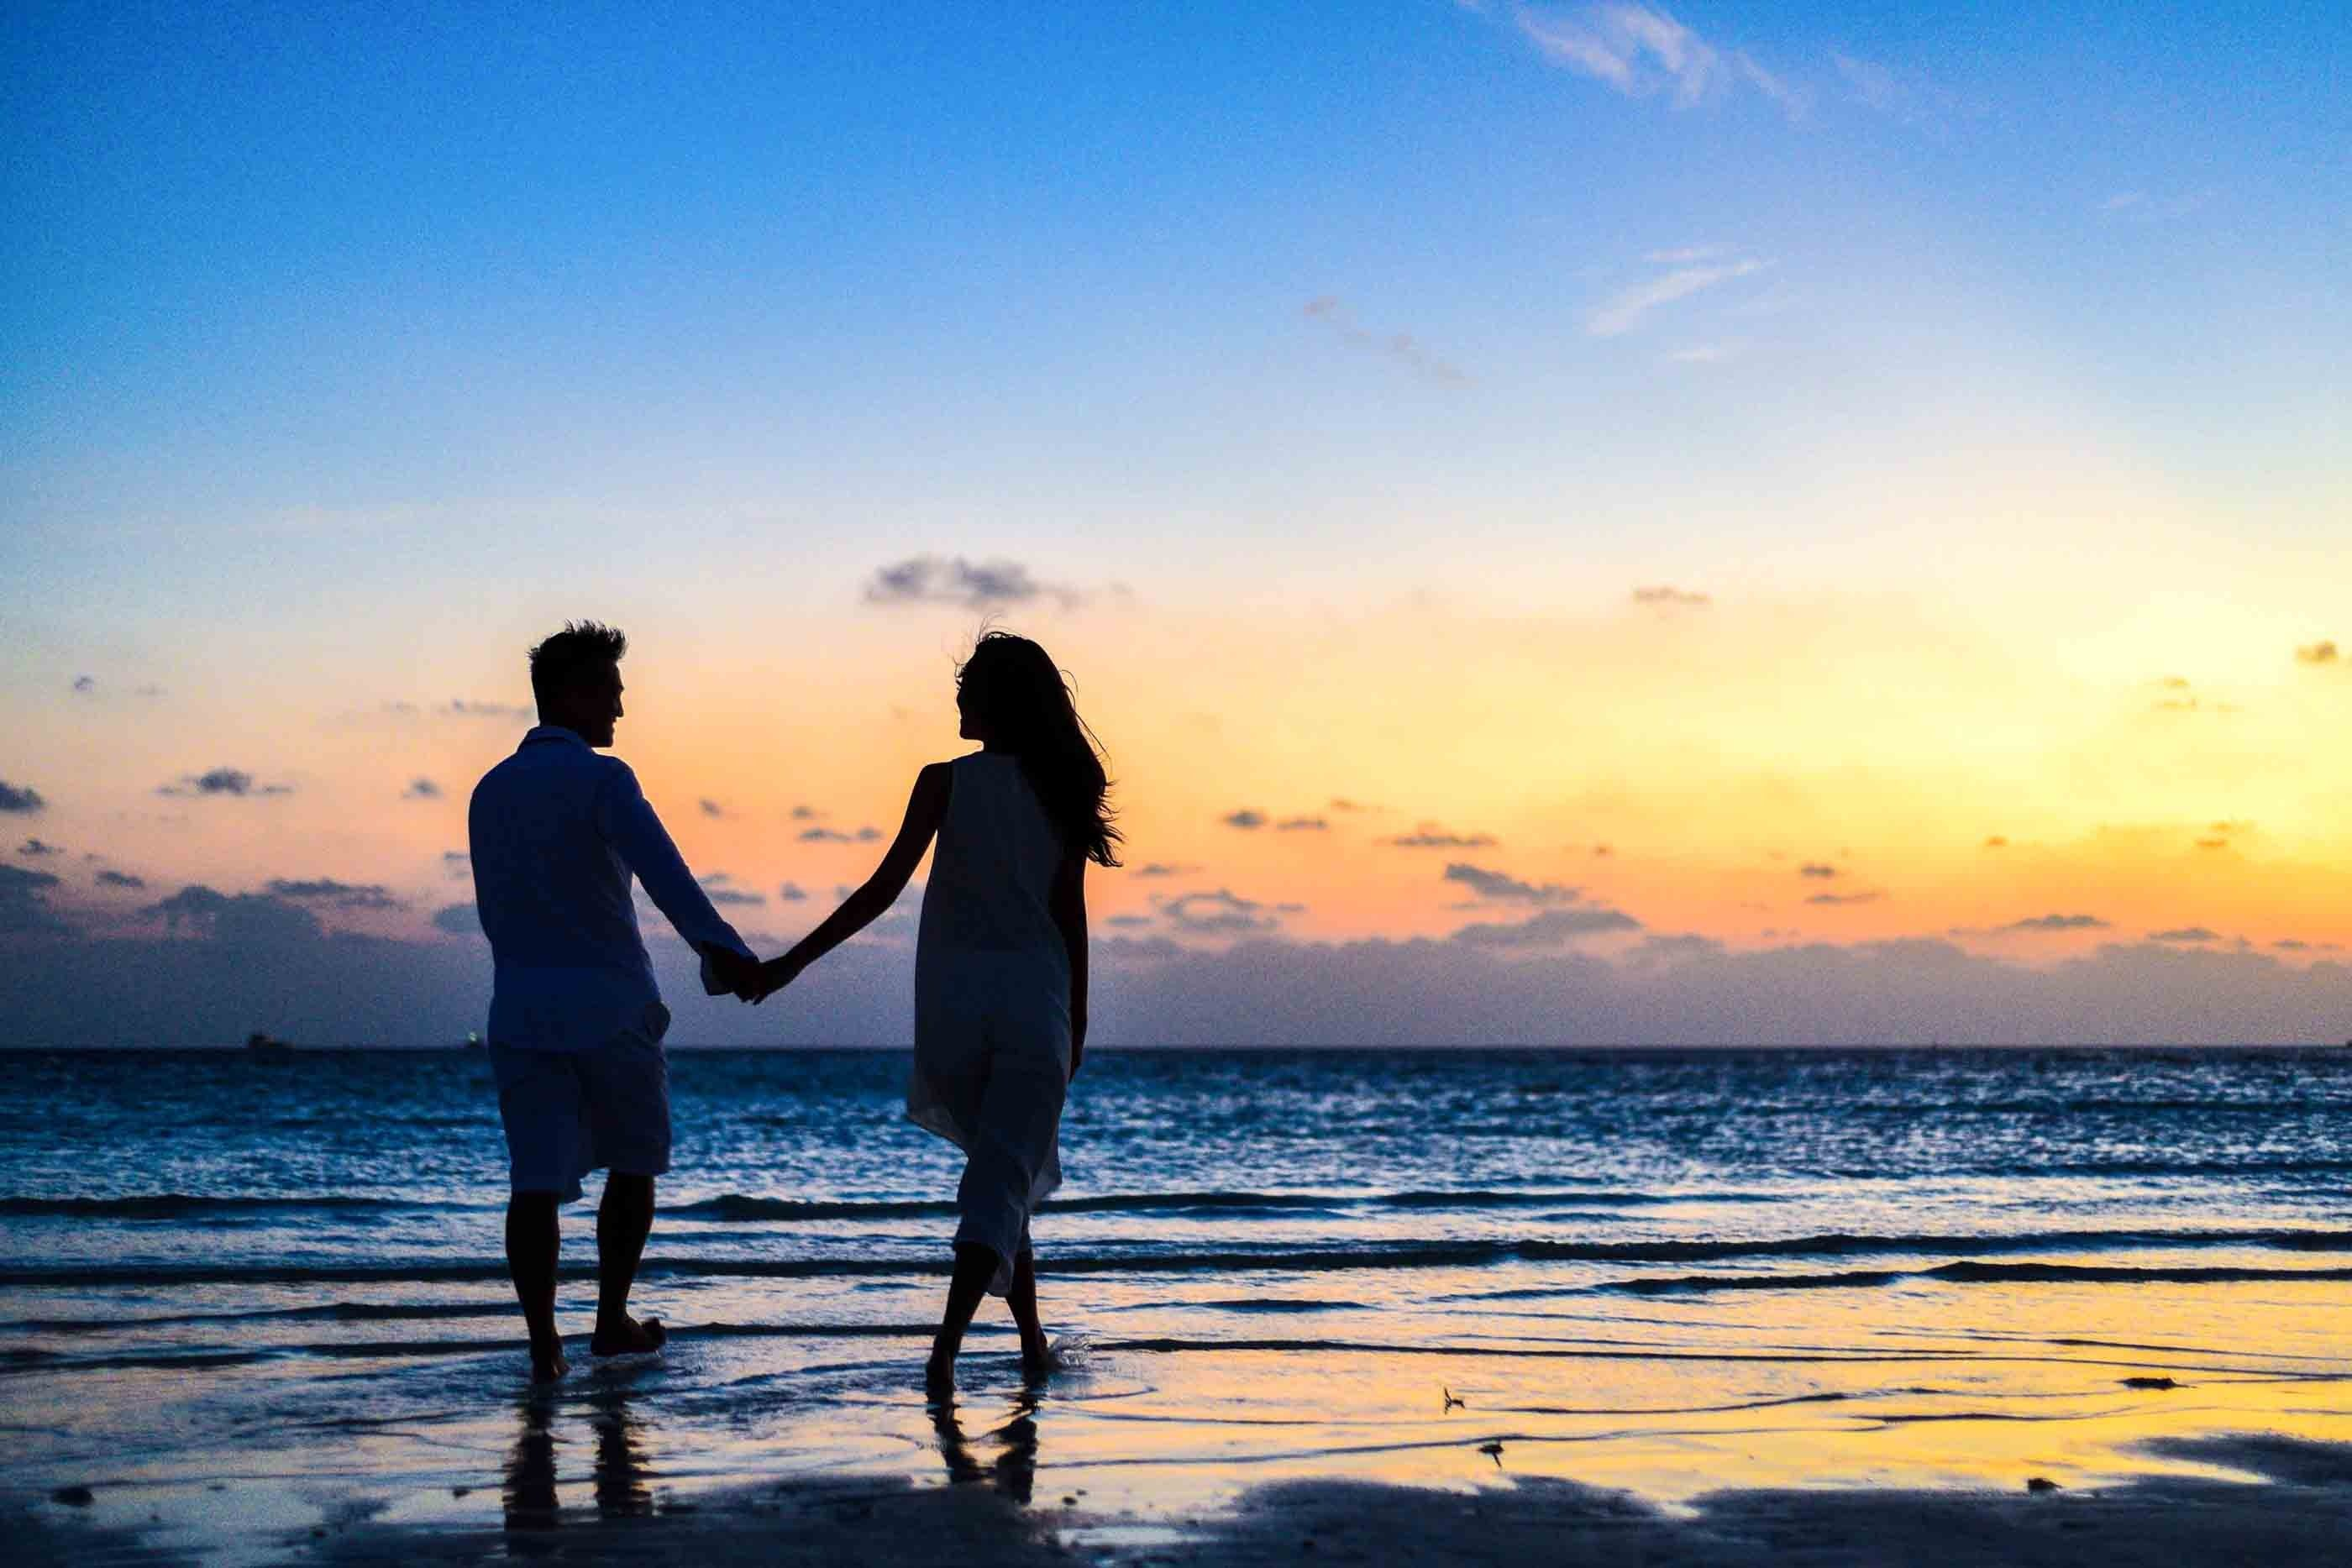 A man and a woman holding hands on seashore during sunrise. | Photo: Pexels